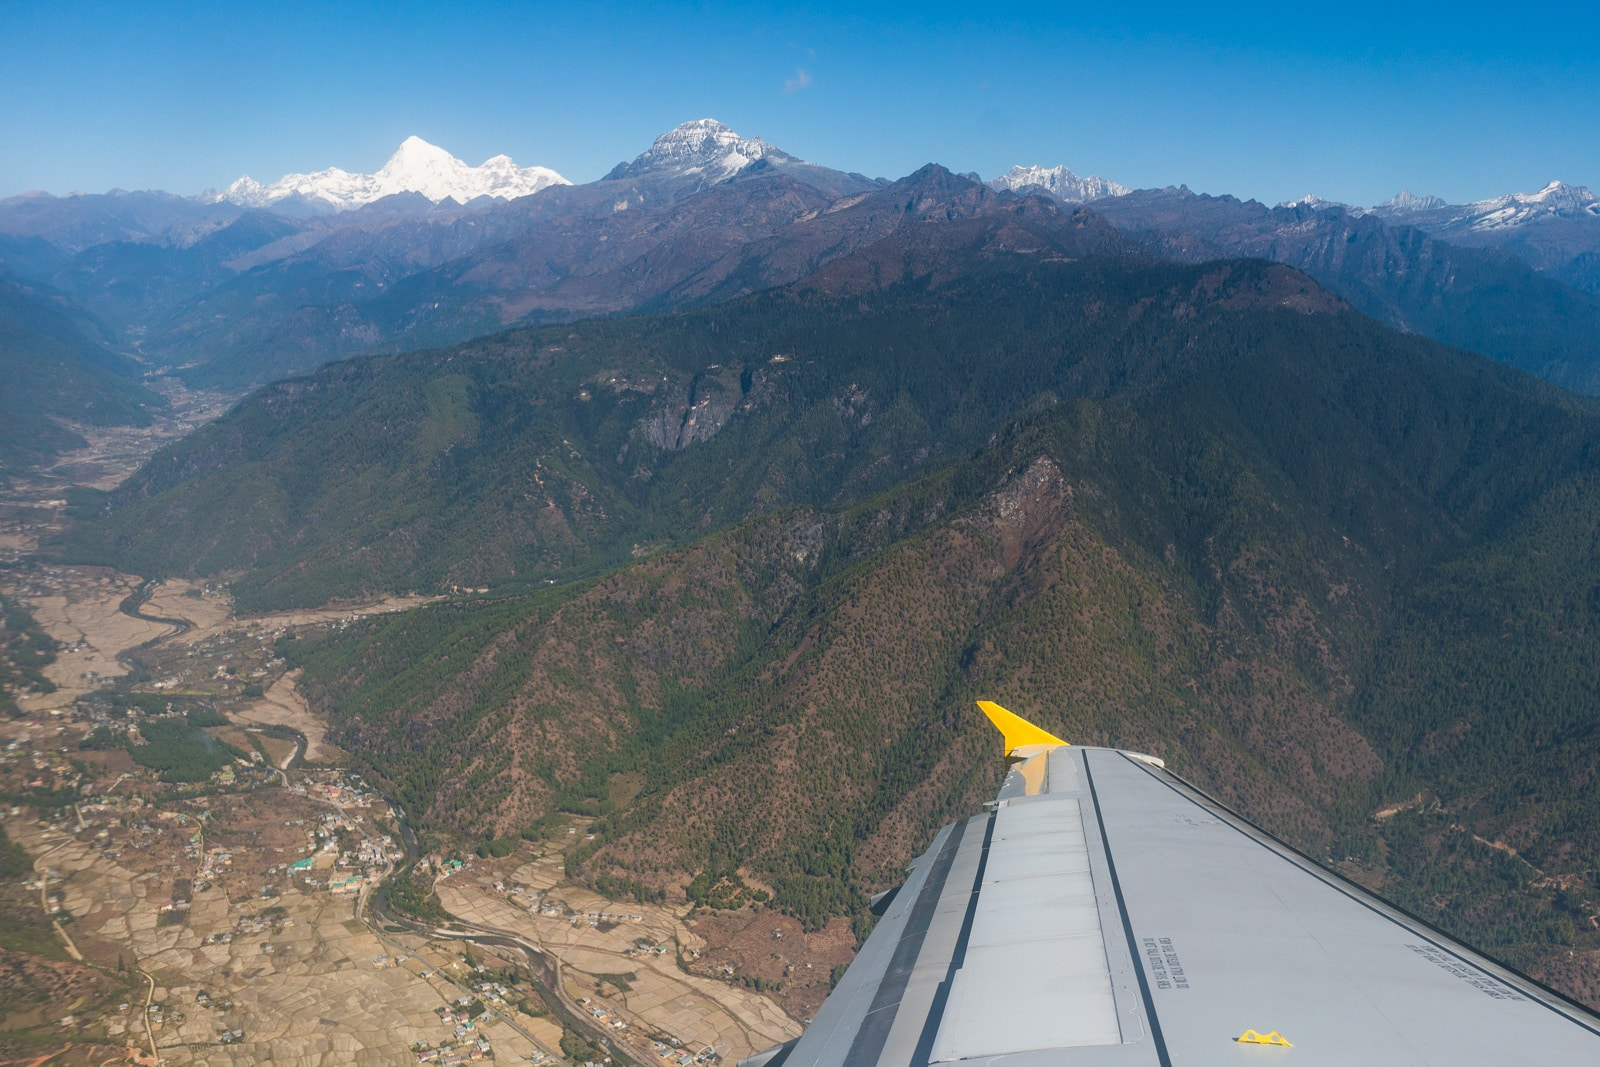 Photos of Bhutan - Plane wing while flying out of Paro - Lost With Purpose travel blog